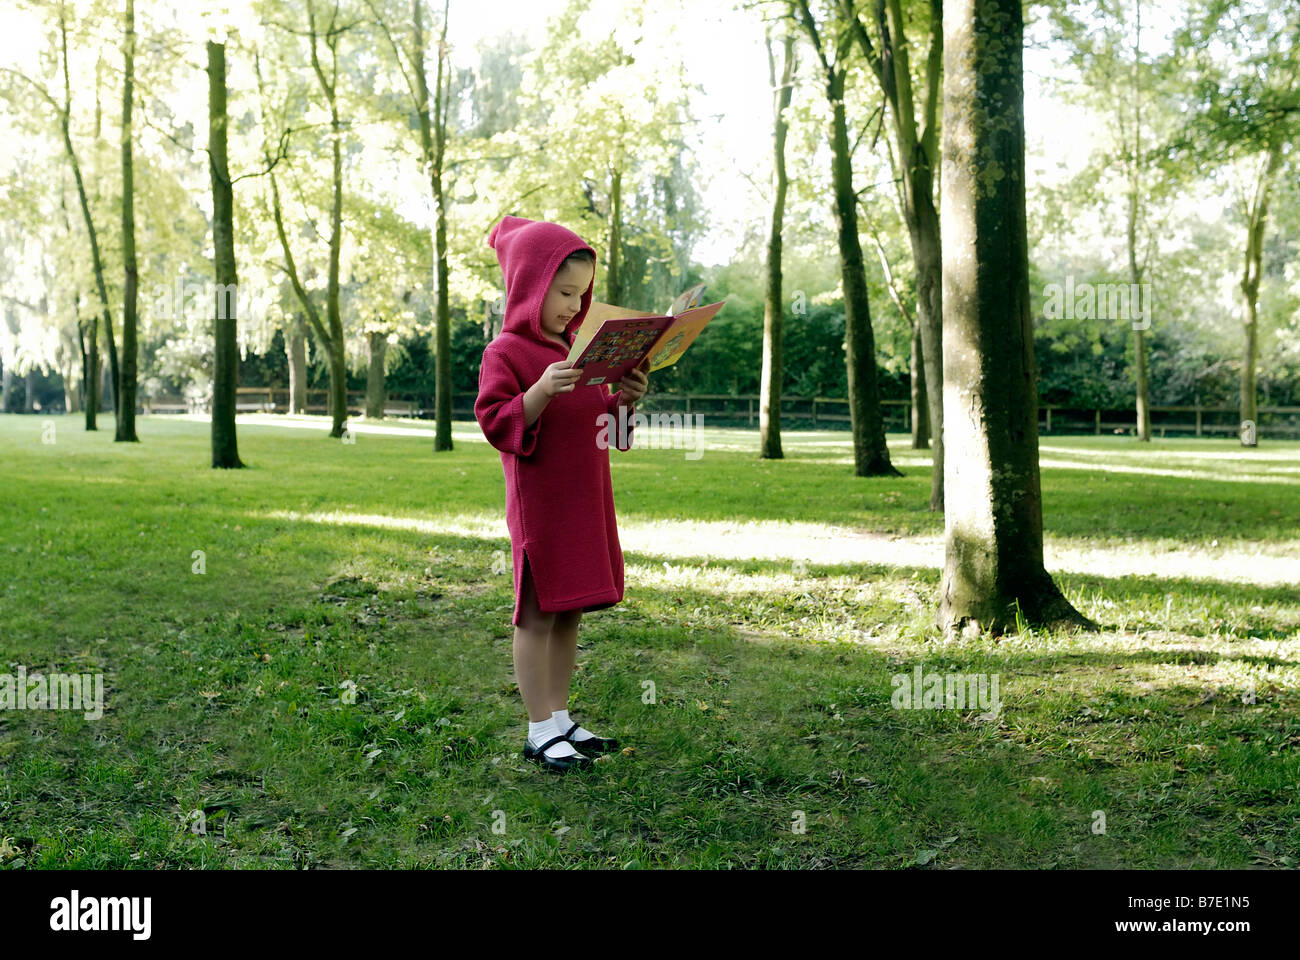 5 years old girl holding a book - Stock Image